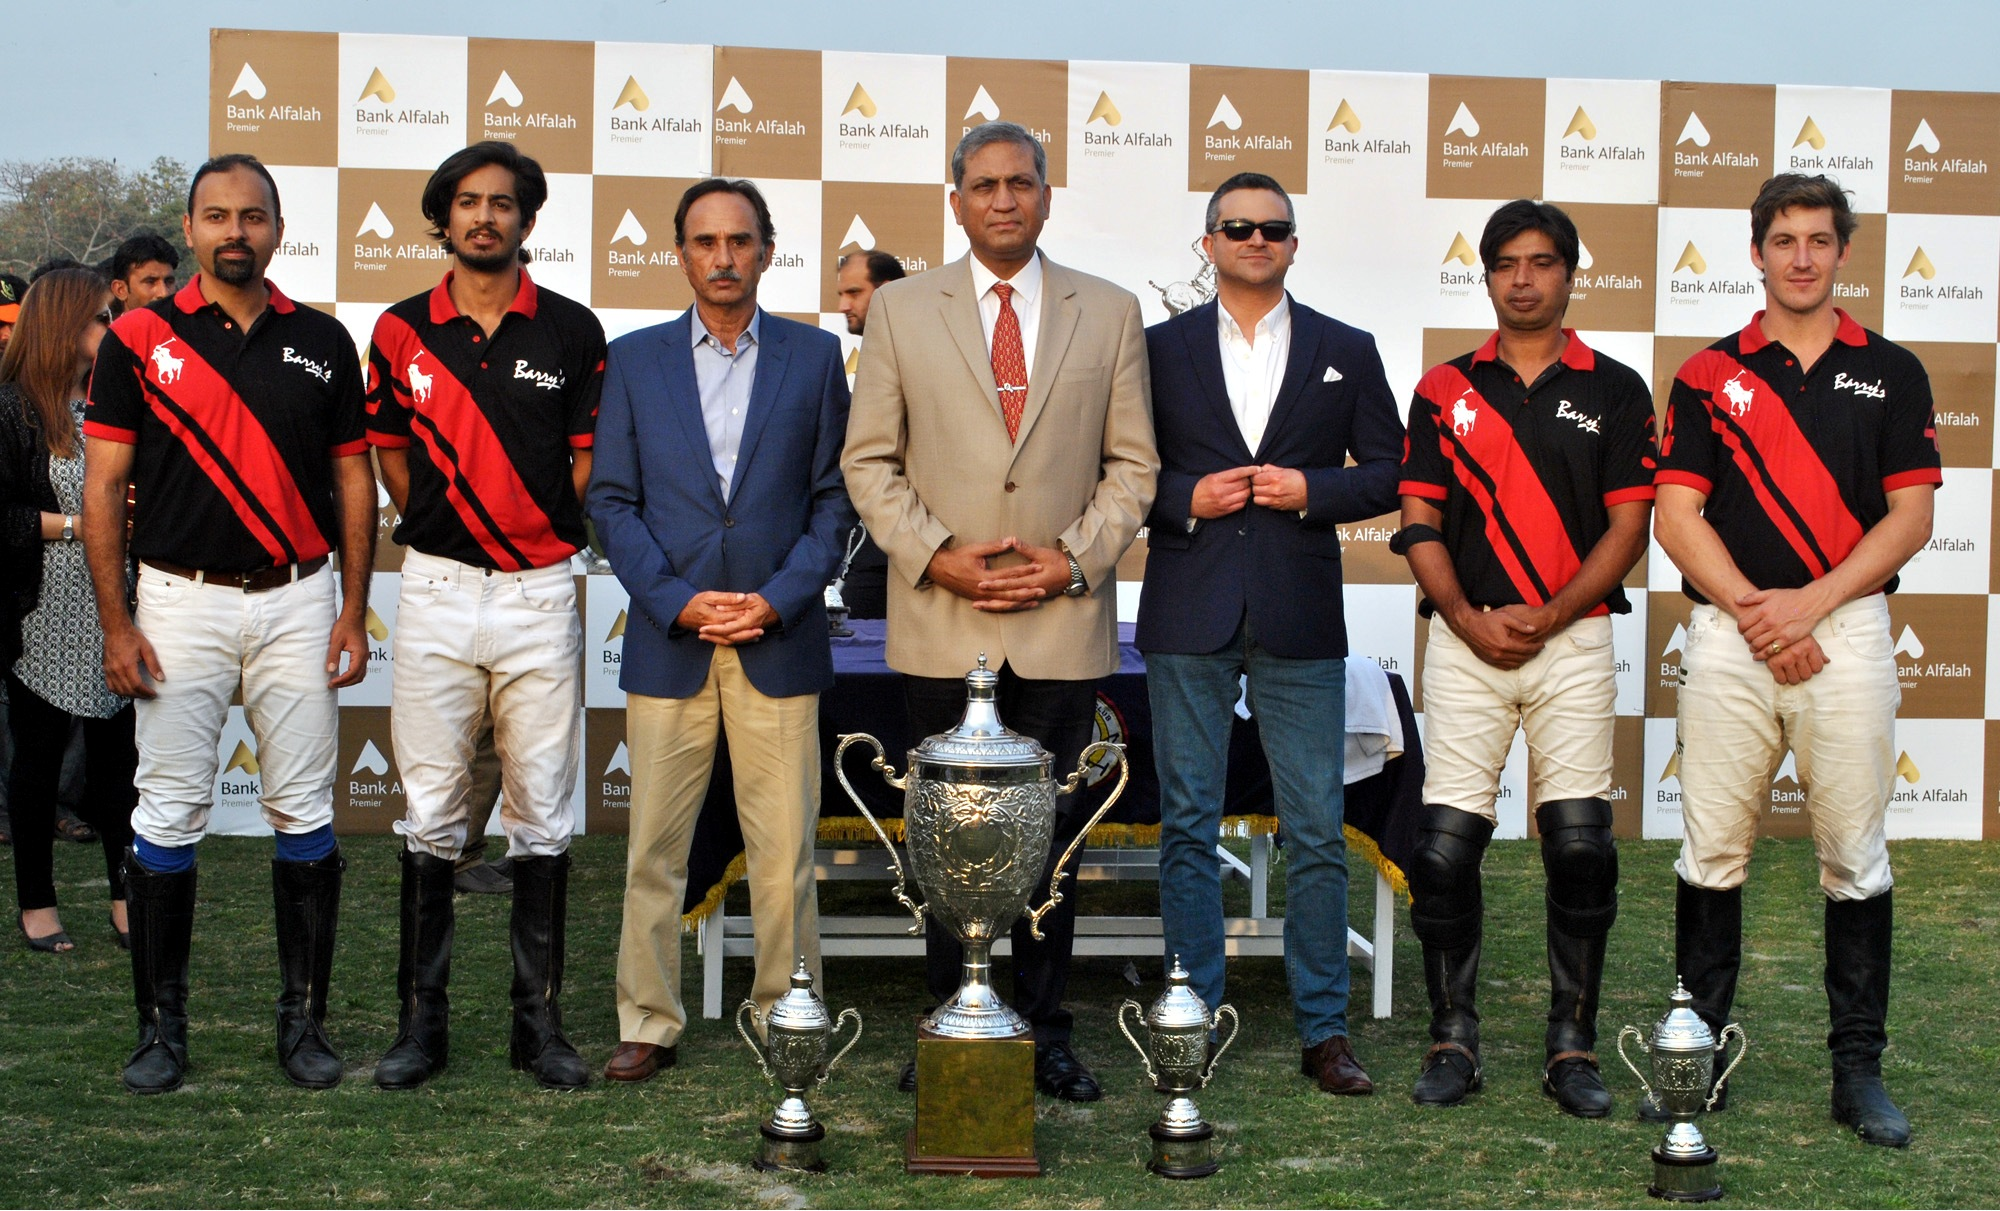 Barrys,the winning team with trophy along with Corps Commander Lahore and others